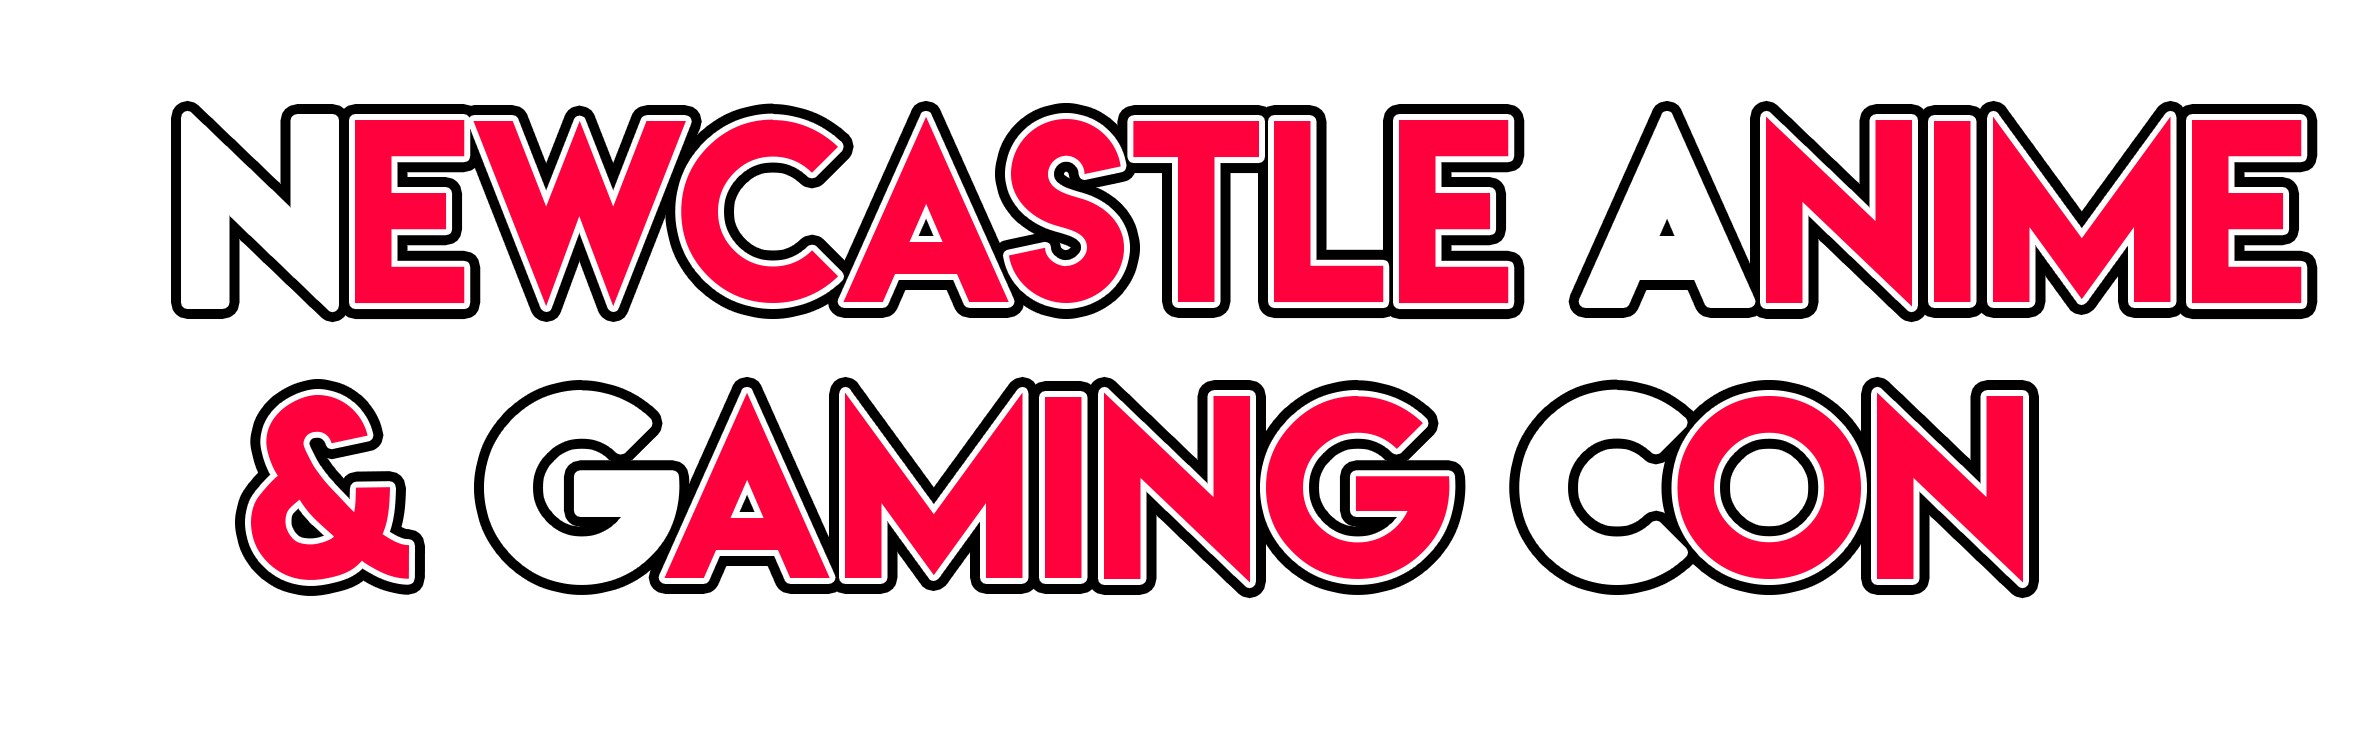 Newcastle Anime & Gaming Con